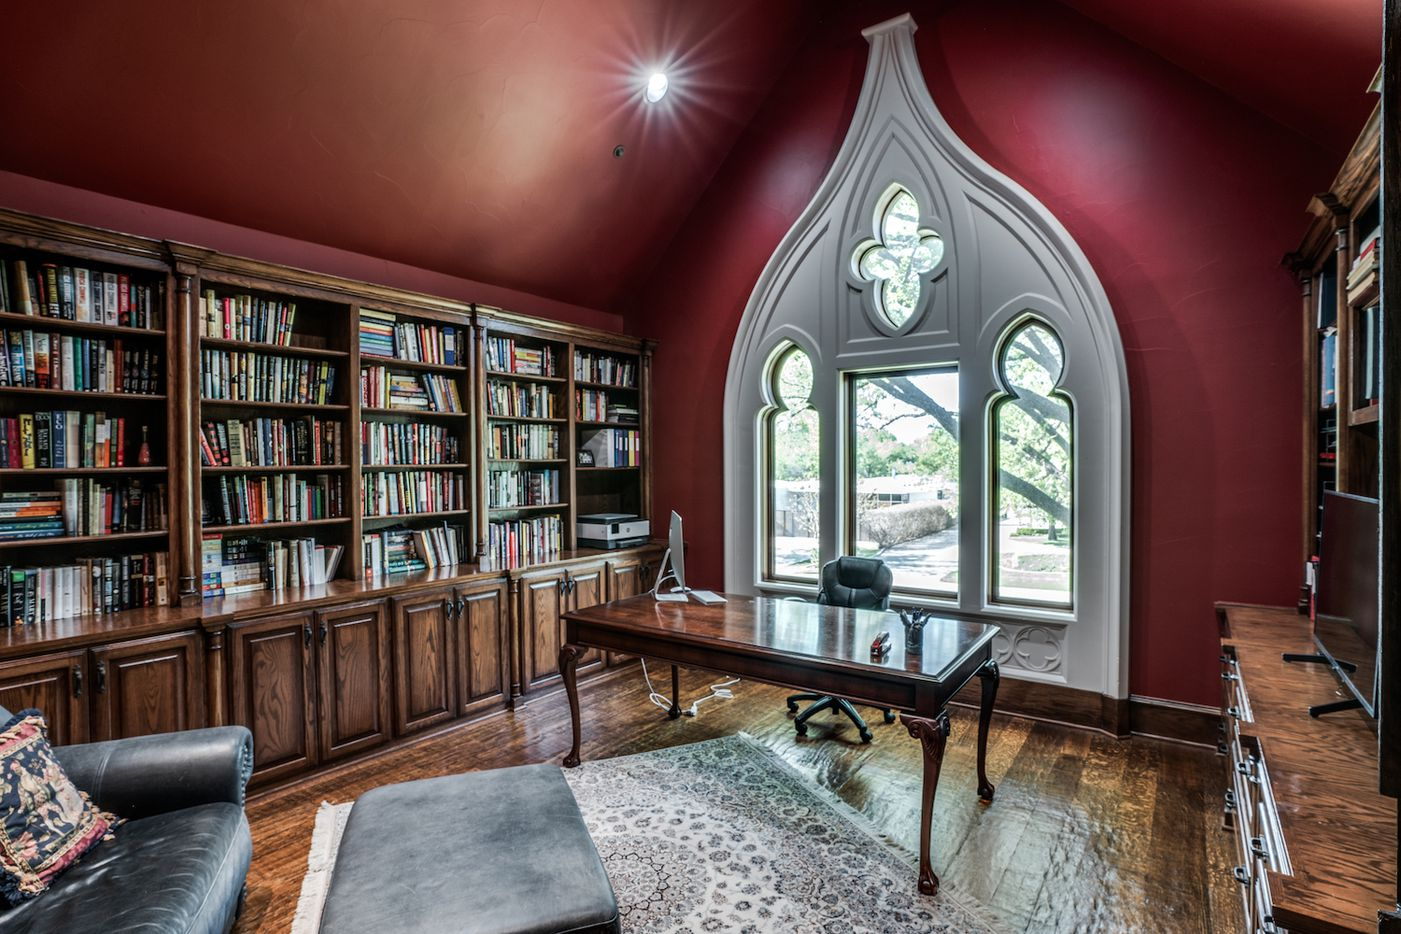 Take a look at the home at 5928 Glendora Ave. in Dallas.